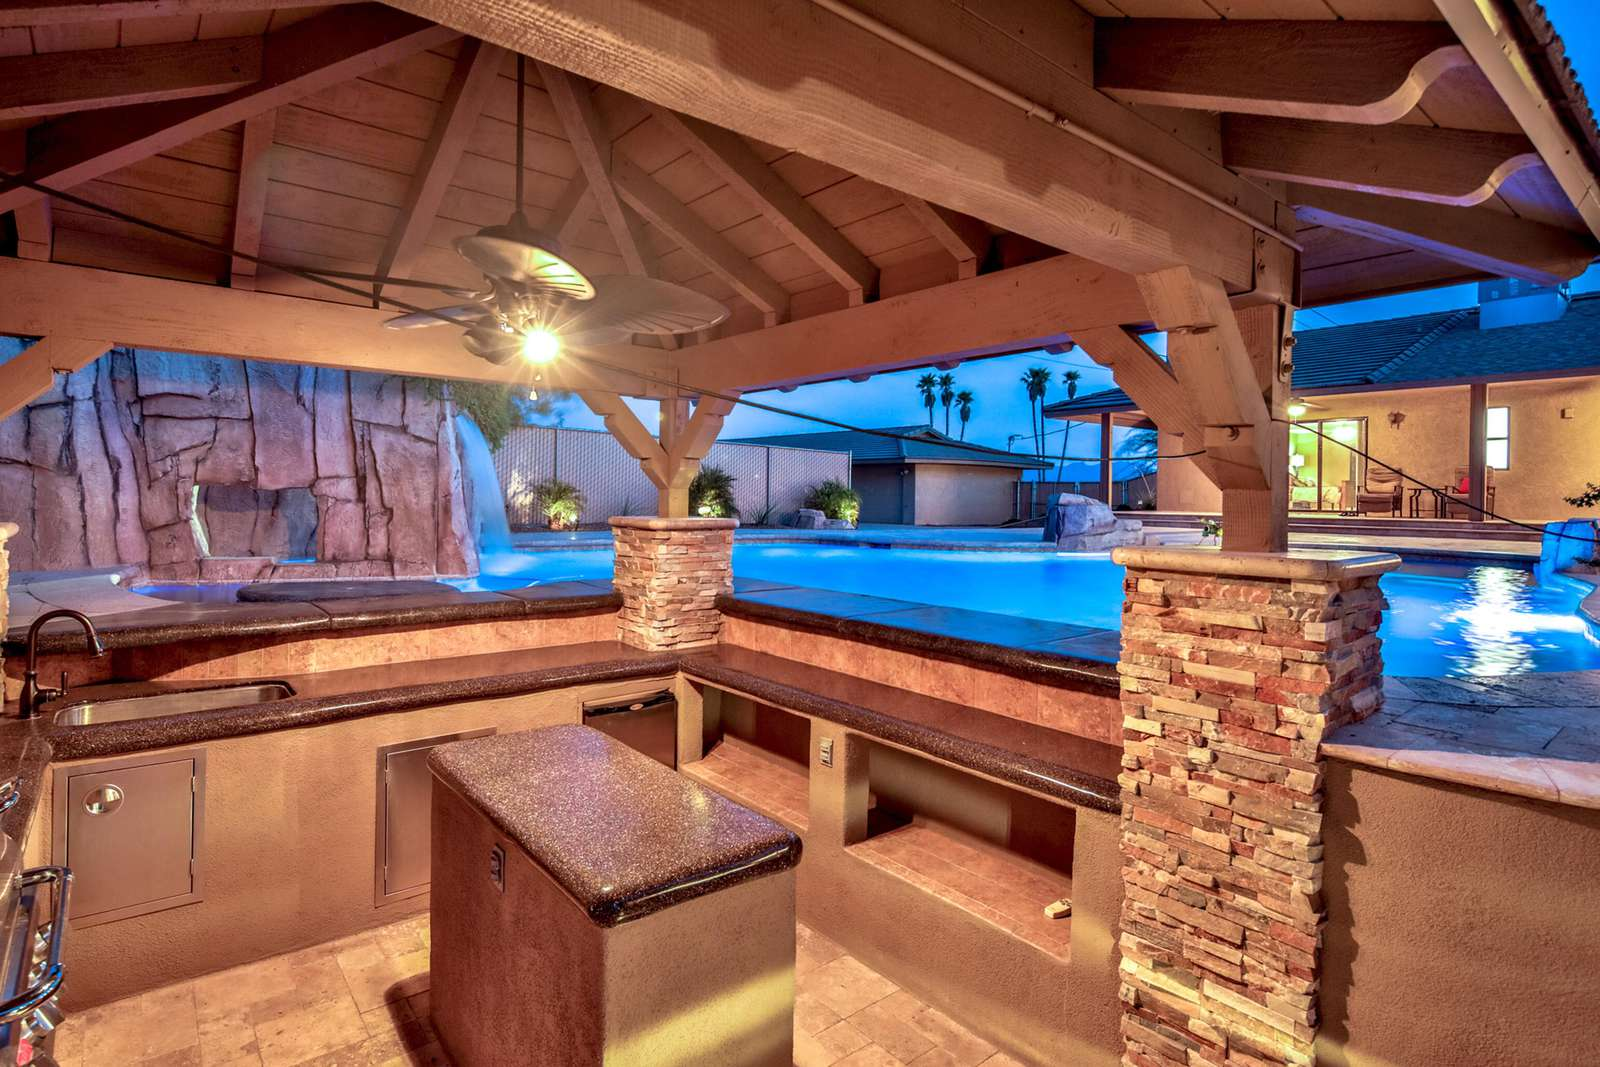 Stay Cool while cooking surrounded by misters and the pool